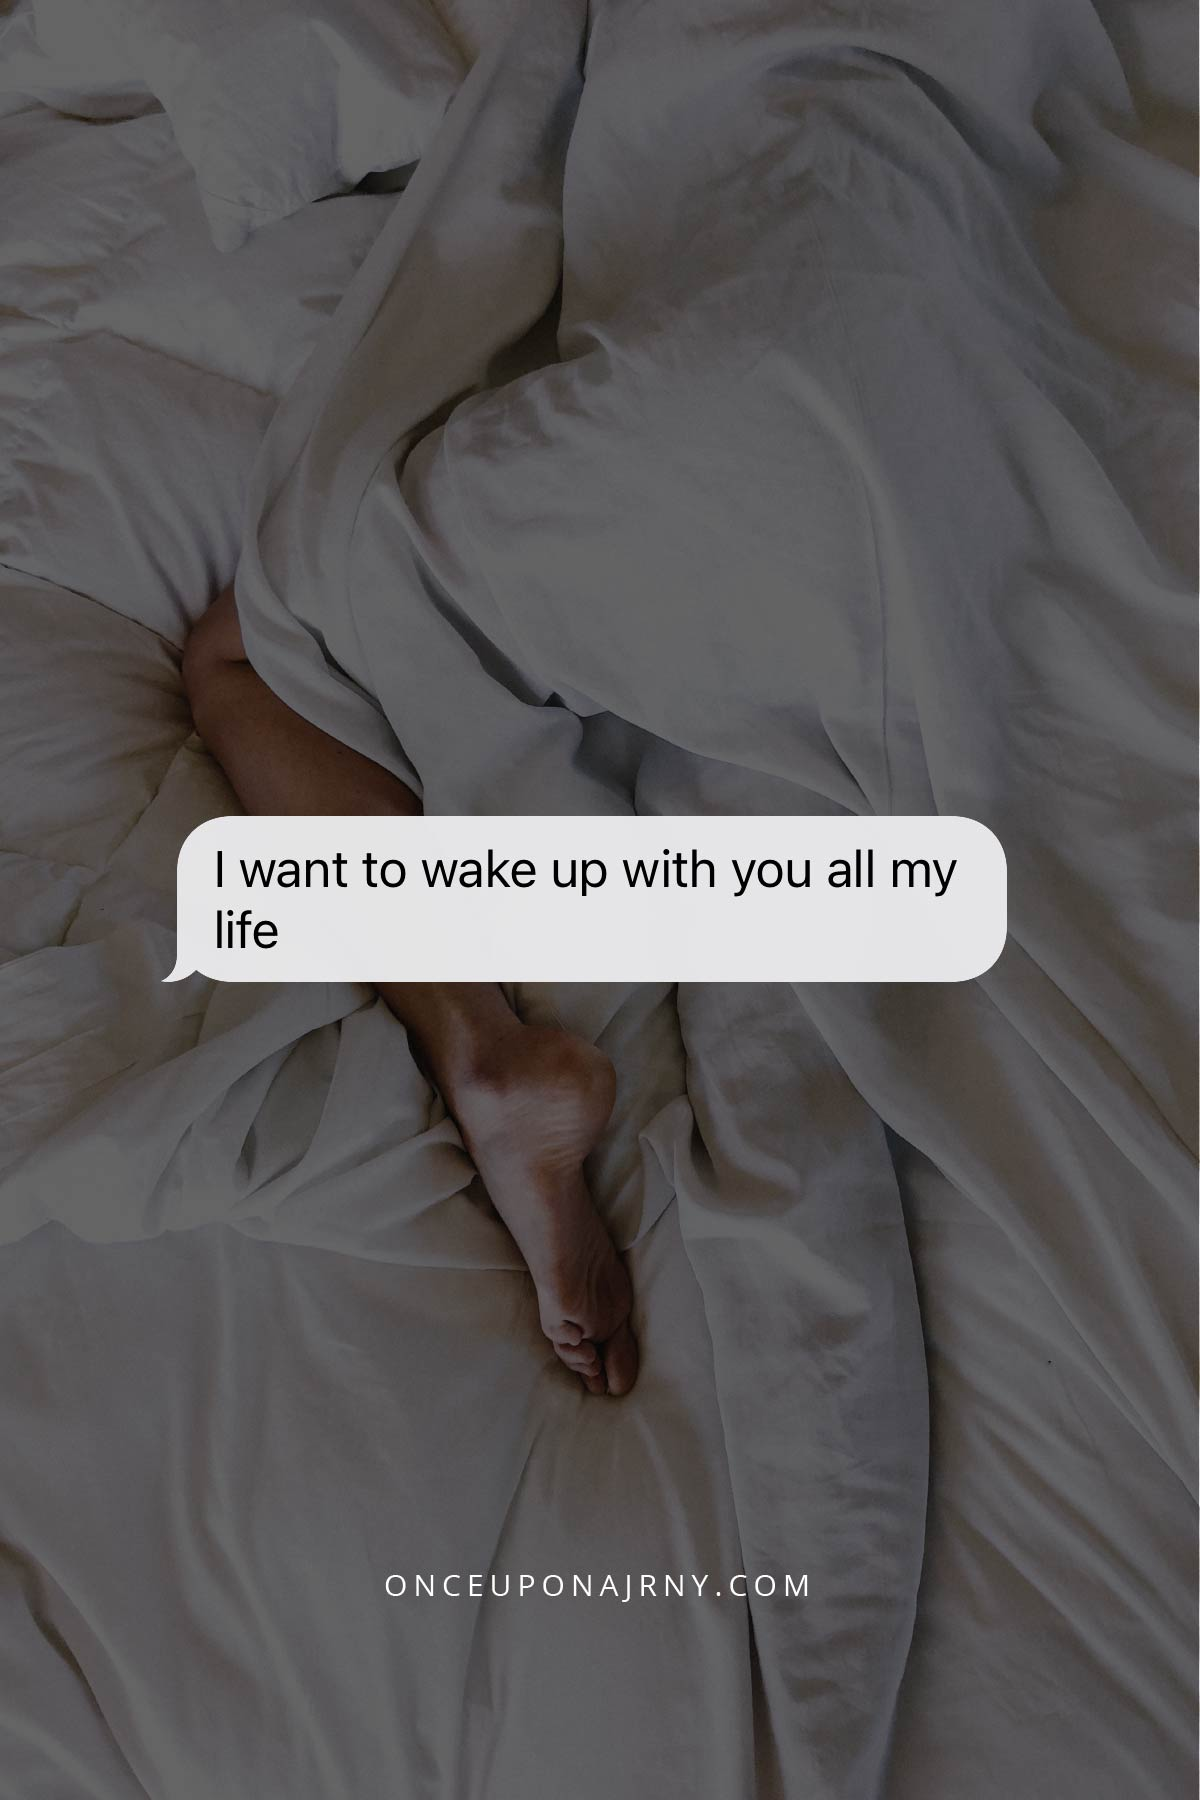 I want to wake up with you all my life lesbian relationship quotes